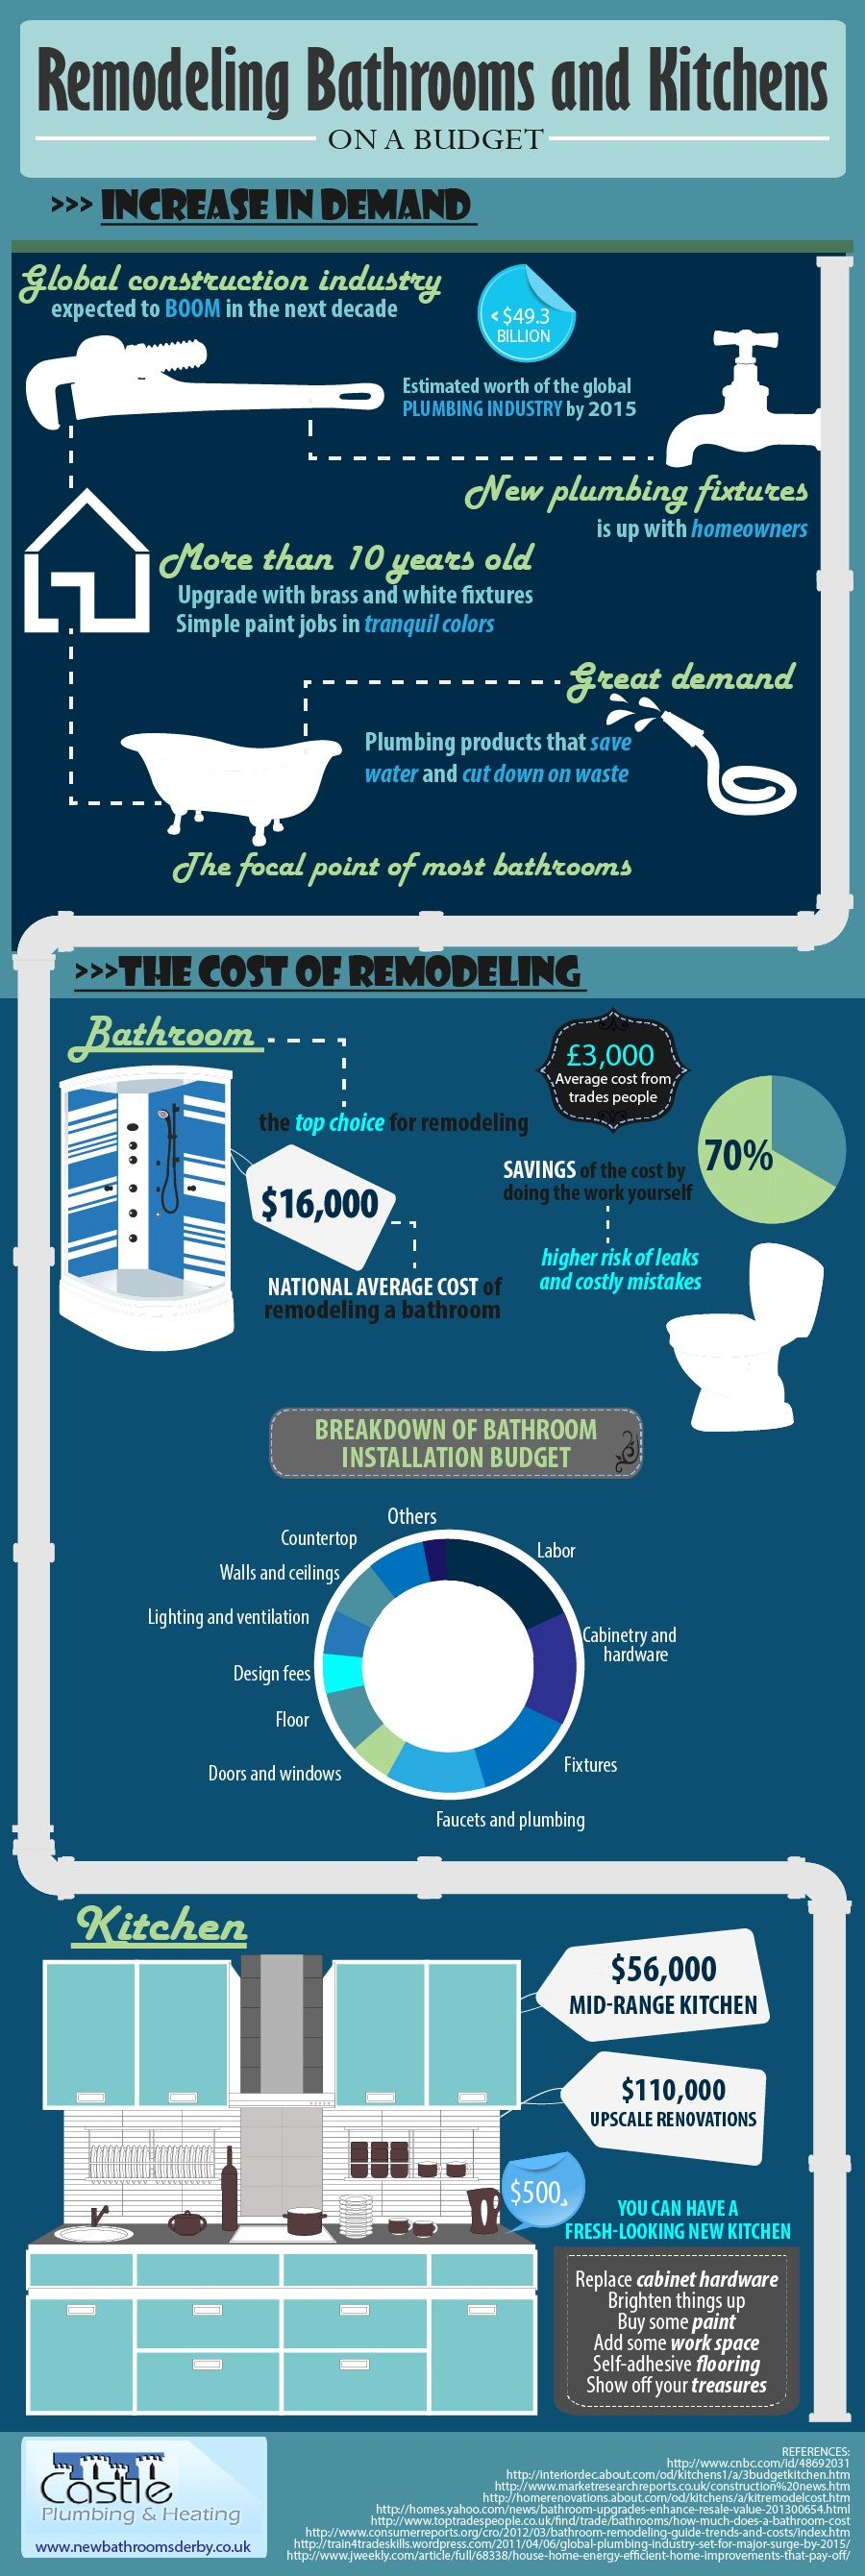 2191 Infographic Remodeling Bathrooms And Kitchens On A Budget